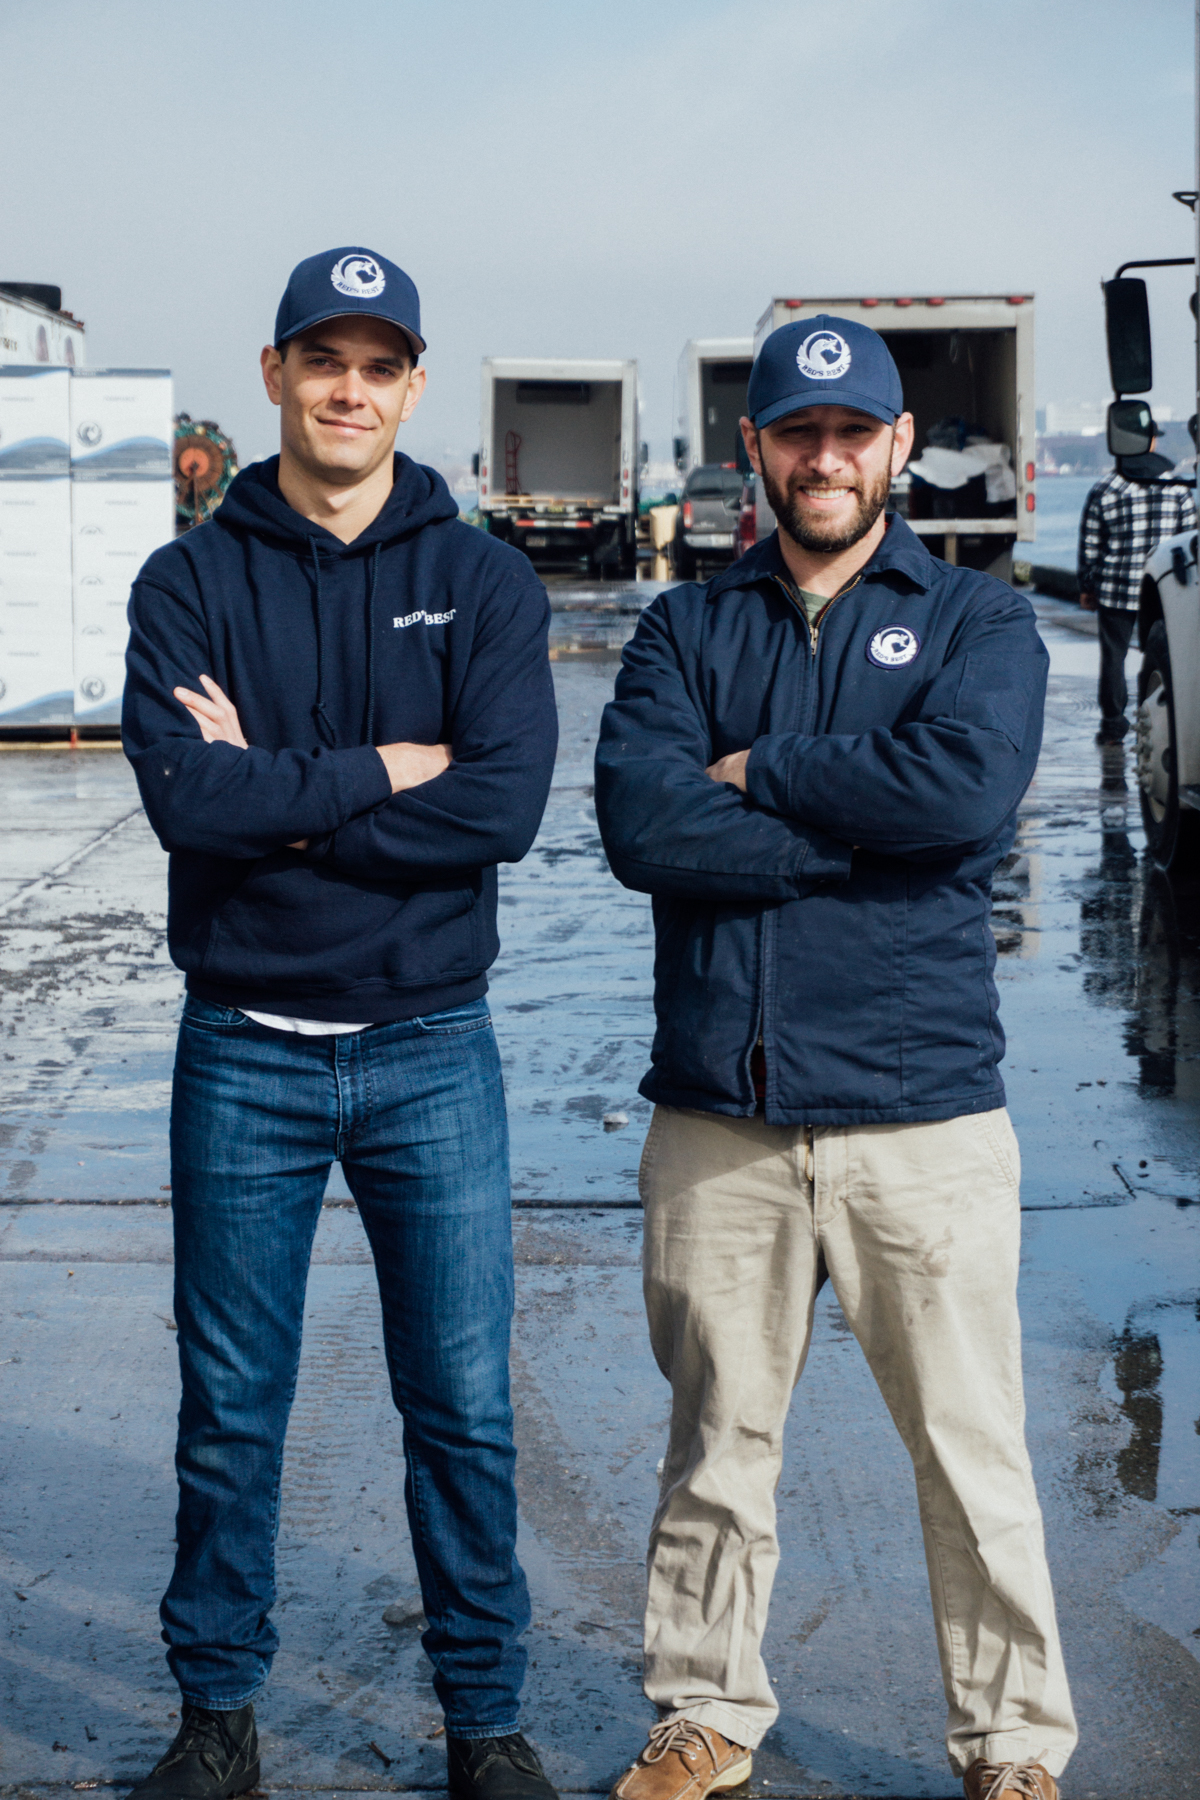 CEO & Founder, Jared Auerbach (on right), Retail Operations Manager, Ryan Rasys.